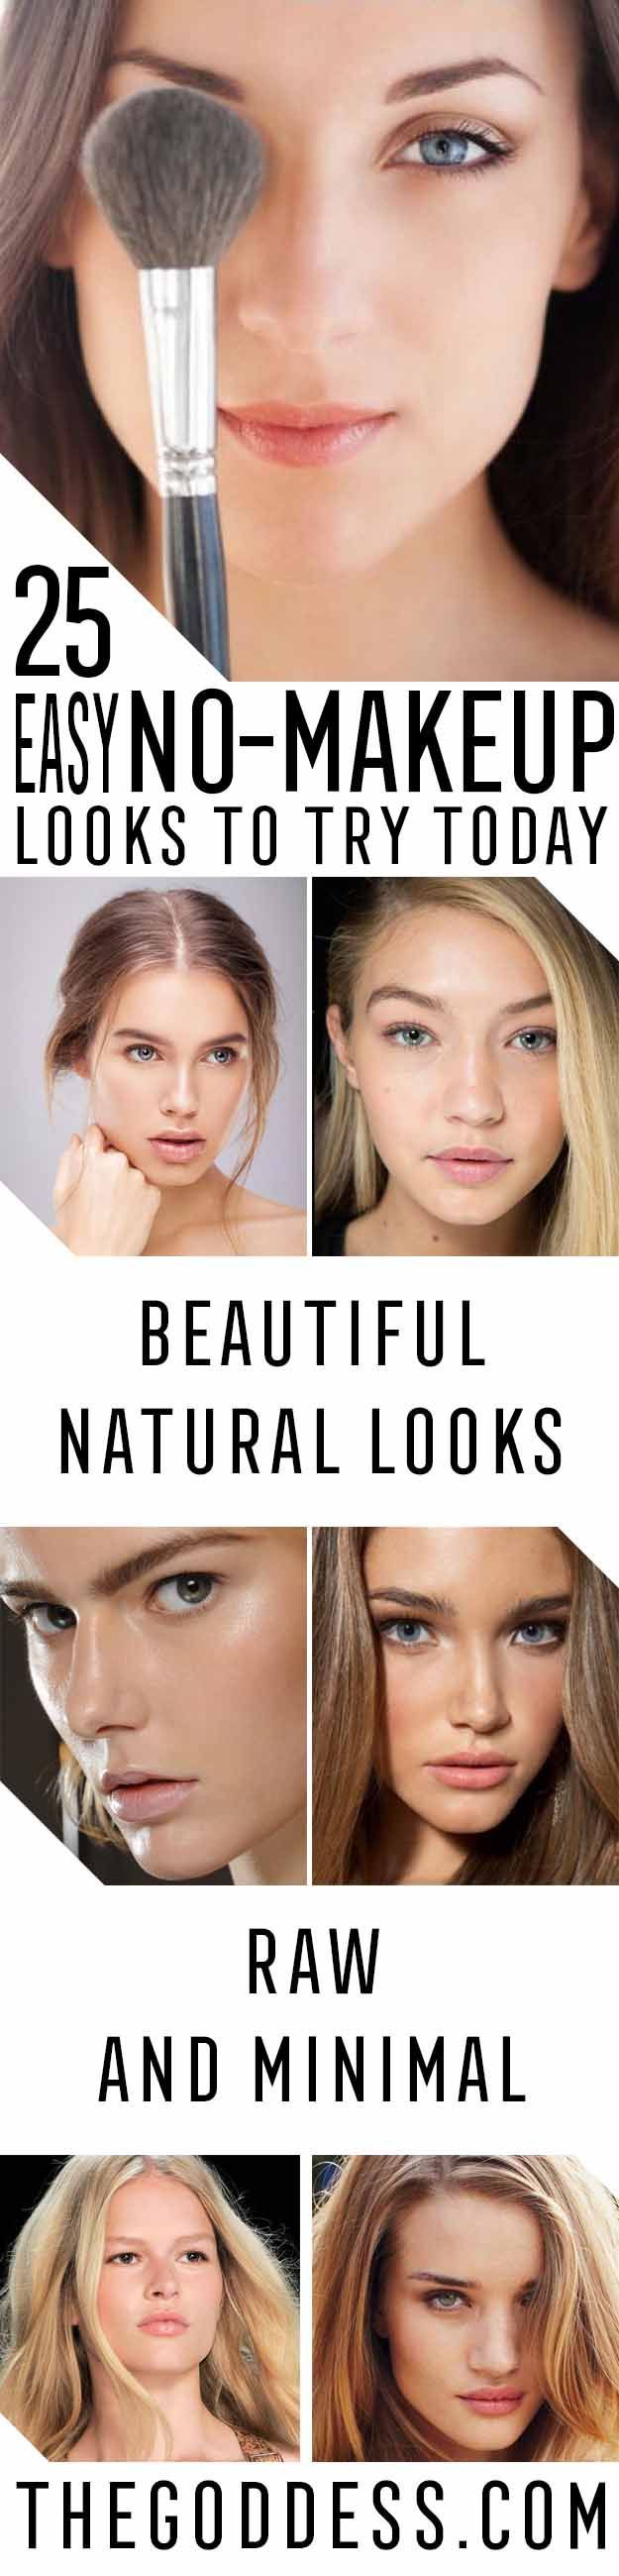 Best ideas for makeup tutorials picture description easy no makeup best ideas for makeup tutorials picture description easy no makeup looks to try today easy tips and guides for a great natural look for school or everyday baditri Images